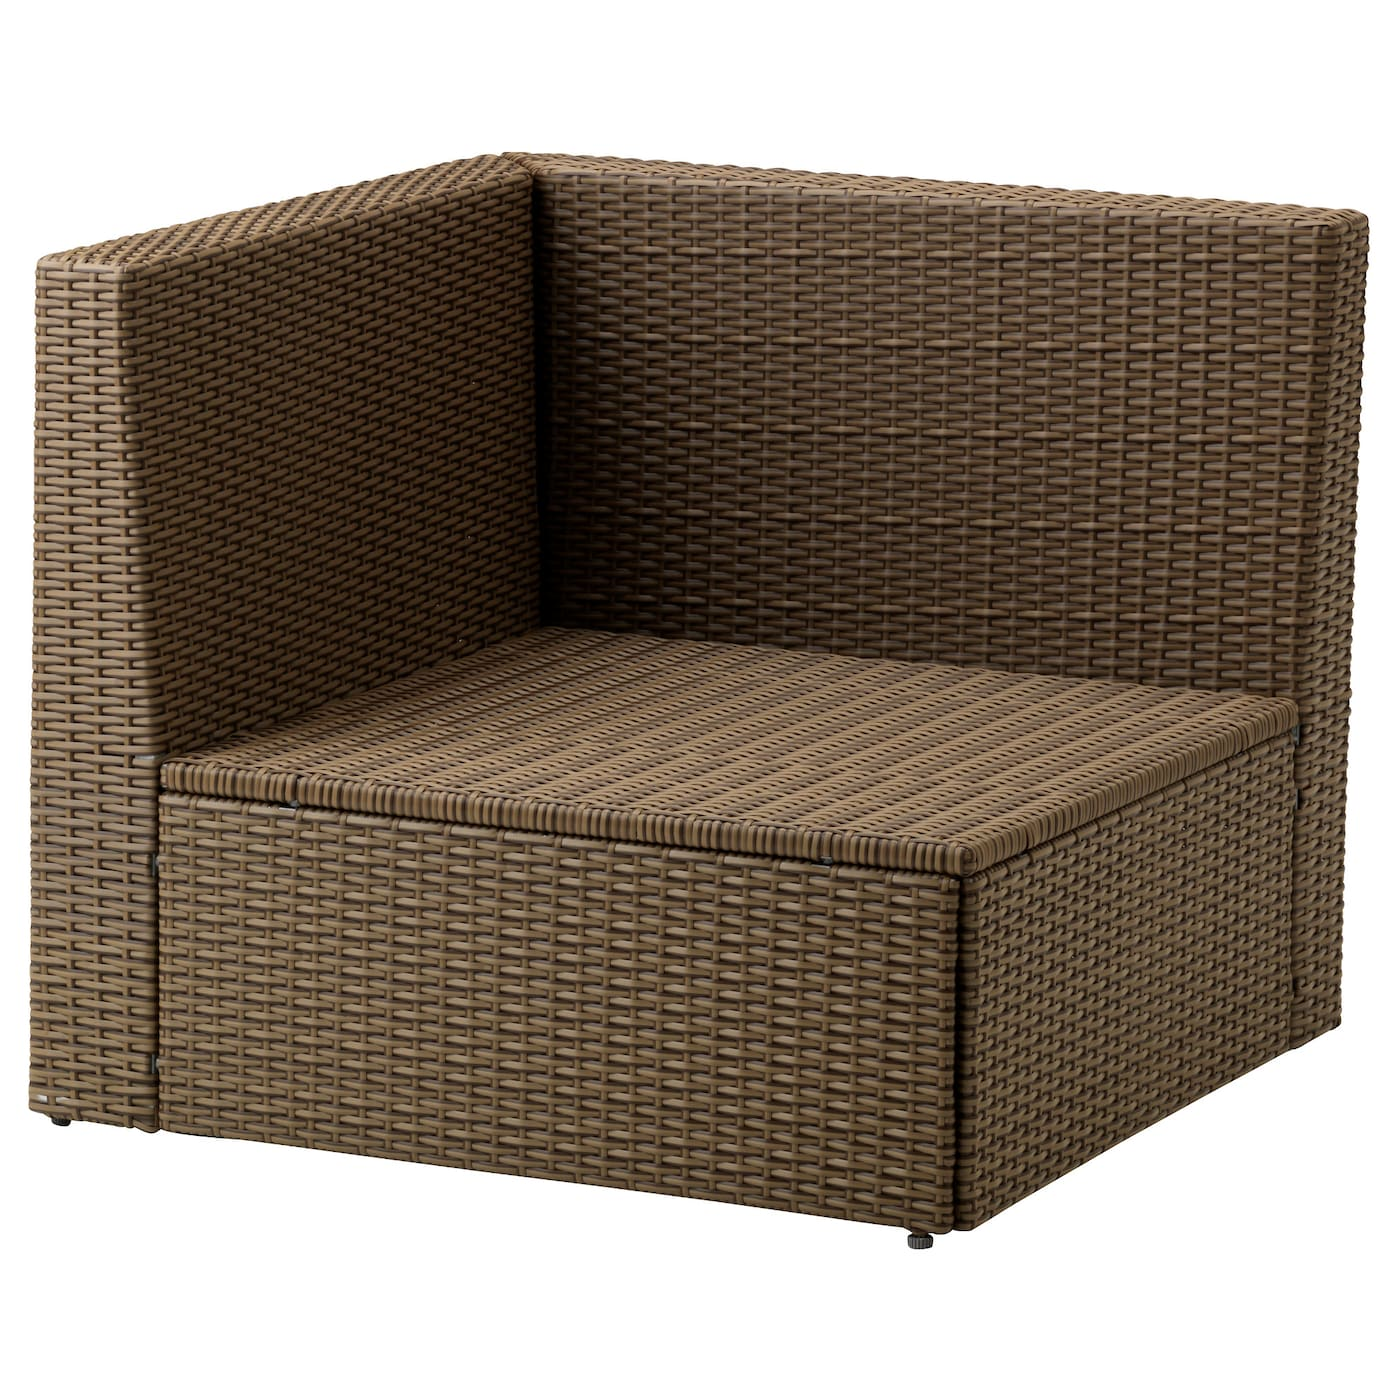 outdoor garden sofas wooden rattan furniture ikea. Black Bedroom Furniture Sets. Home Design Ideas